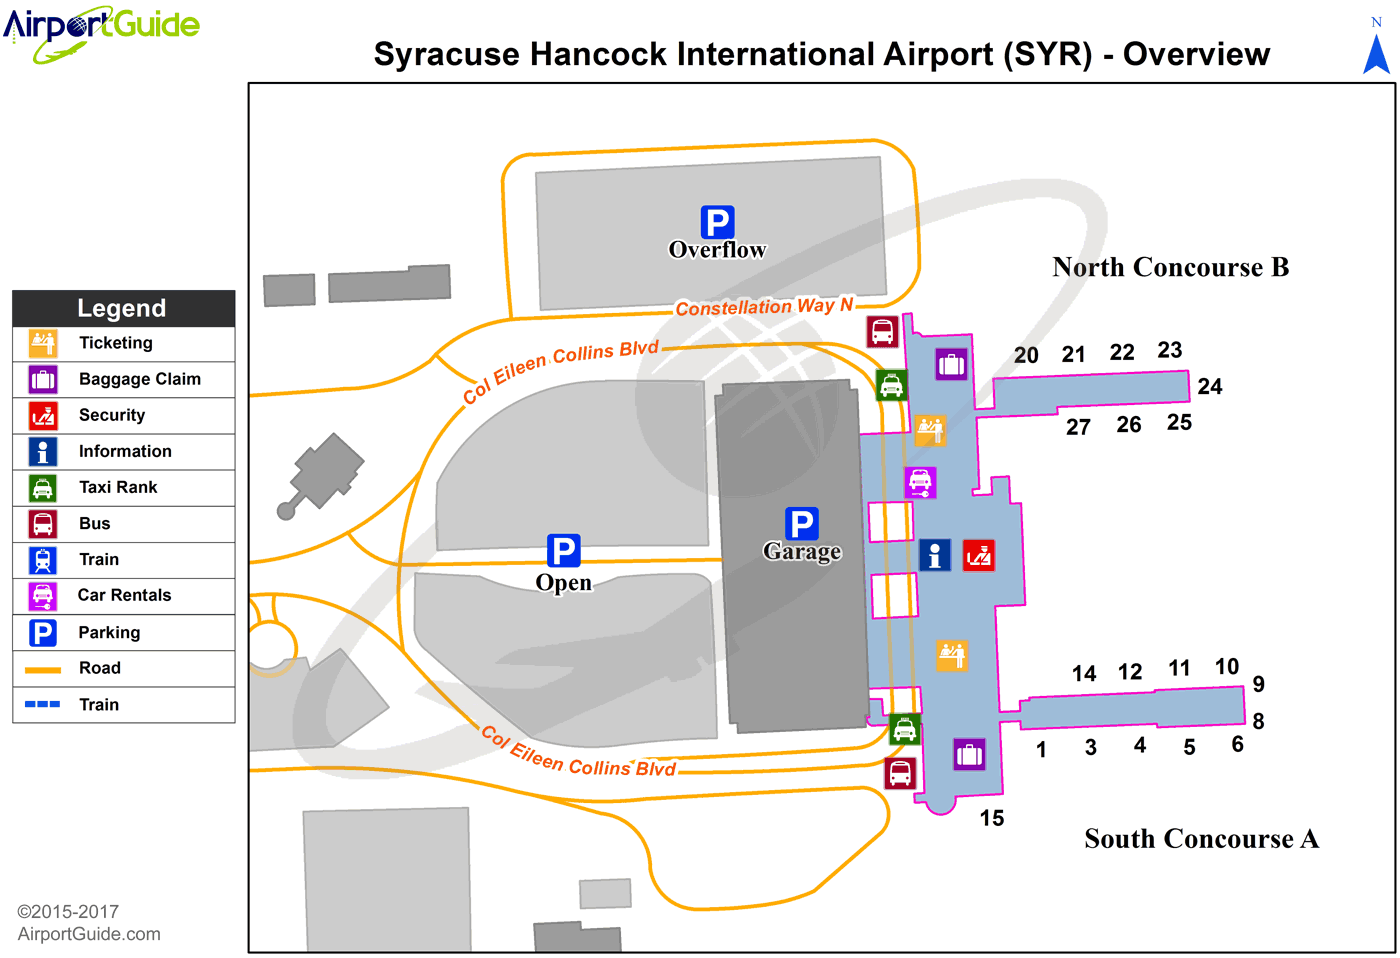 Syracuse - Syracuse Hancock International (SYR) Airport Terminal Map - Overview